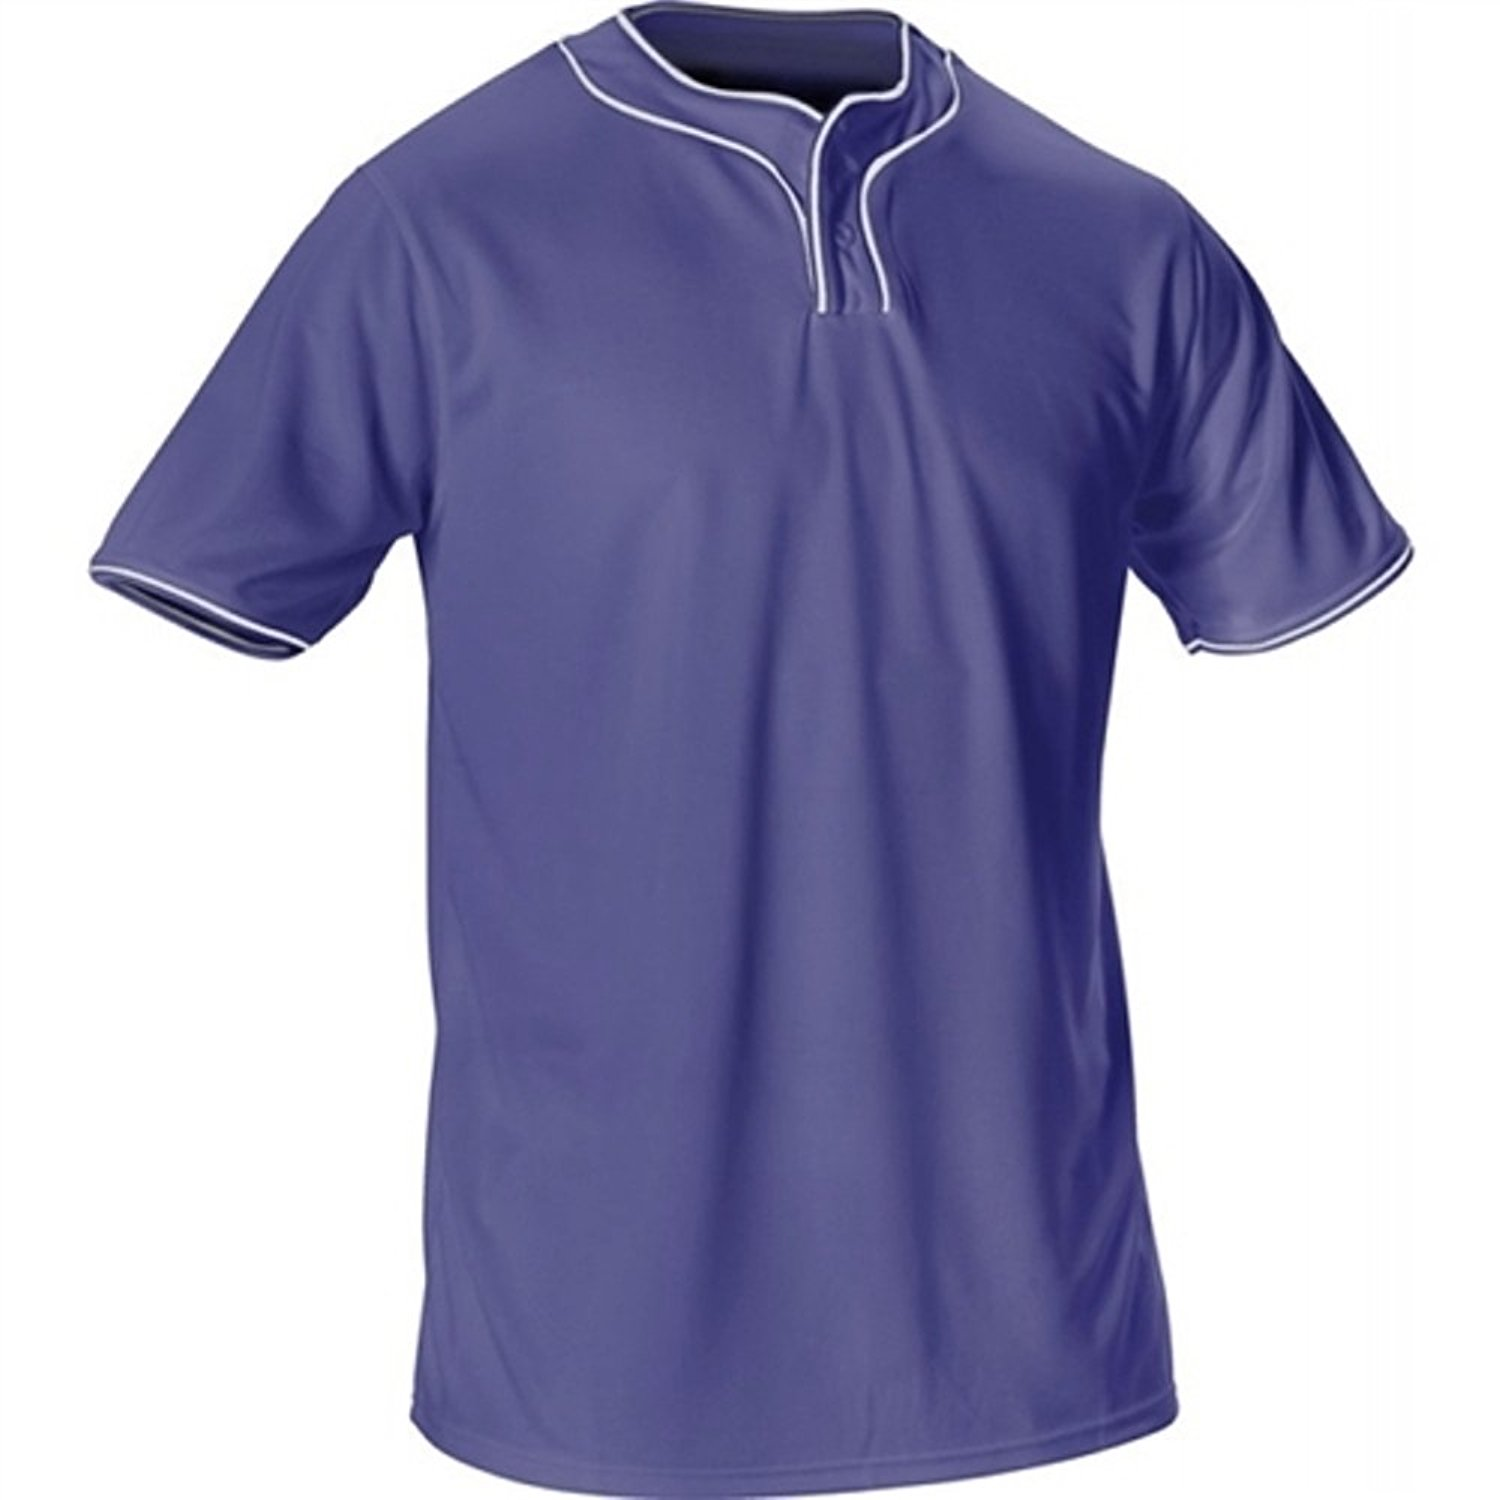 ALLESON Extreme Microfiber 2-Button Baseball Jersey - 506THY- Adult XX-Large (XXL) - Navy Blue/White